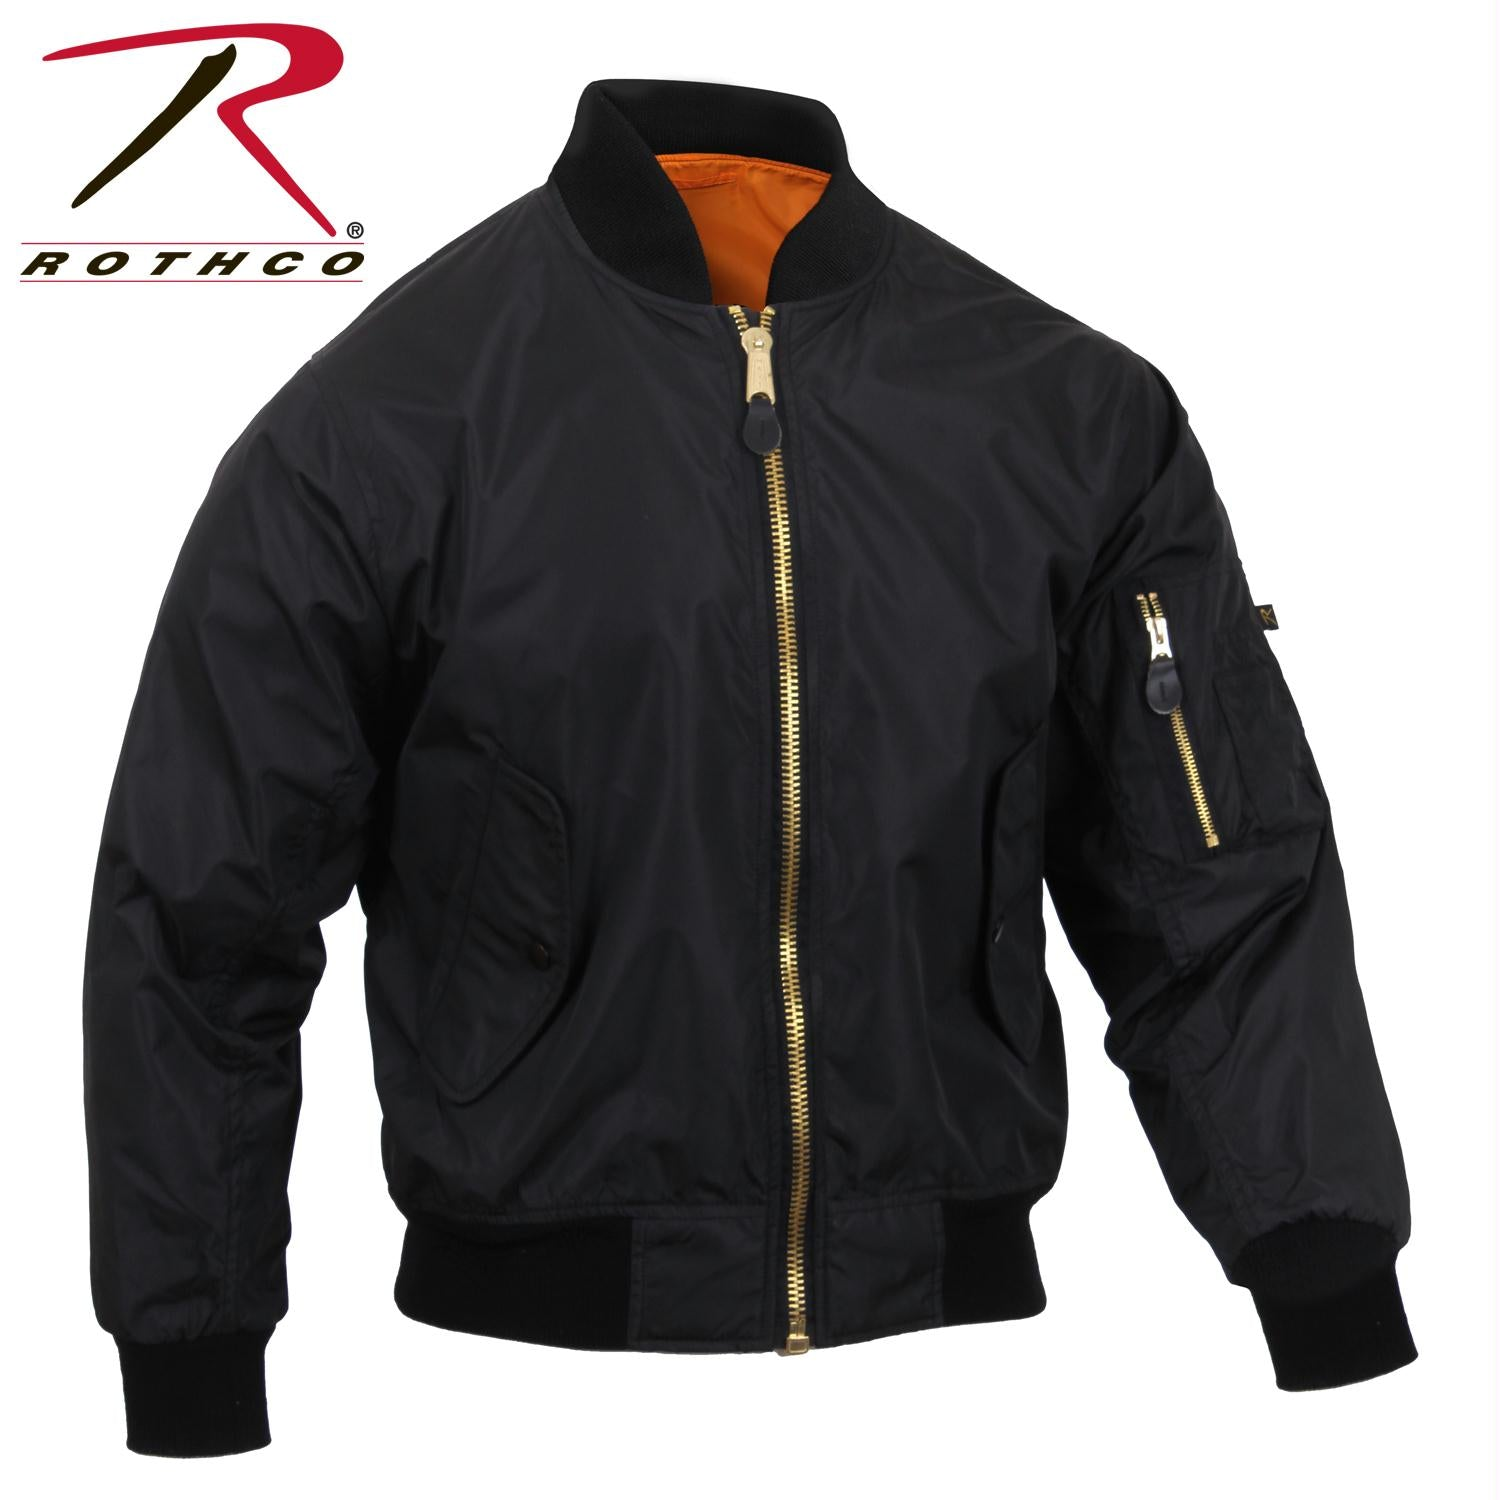 Rothco Lightweight MA-1 Flight Jacket - Black / S